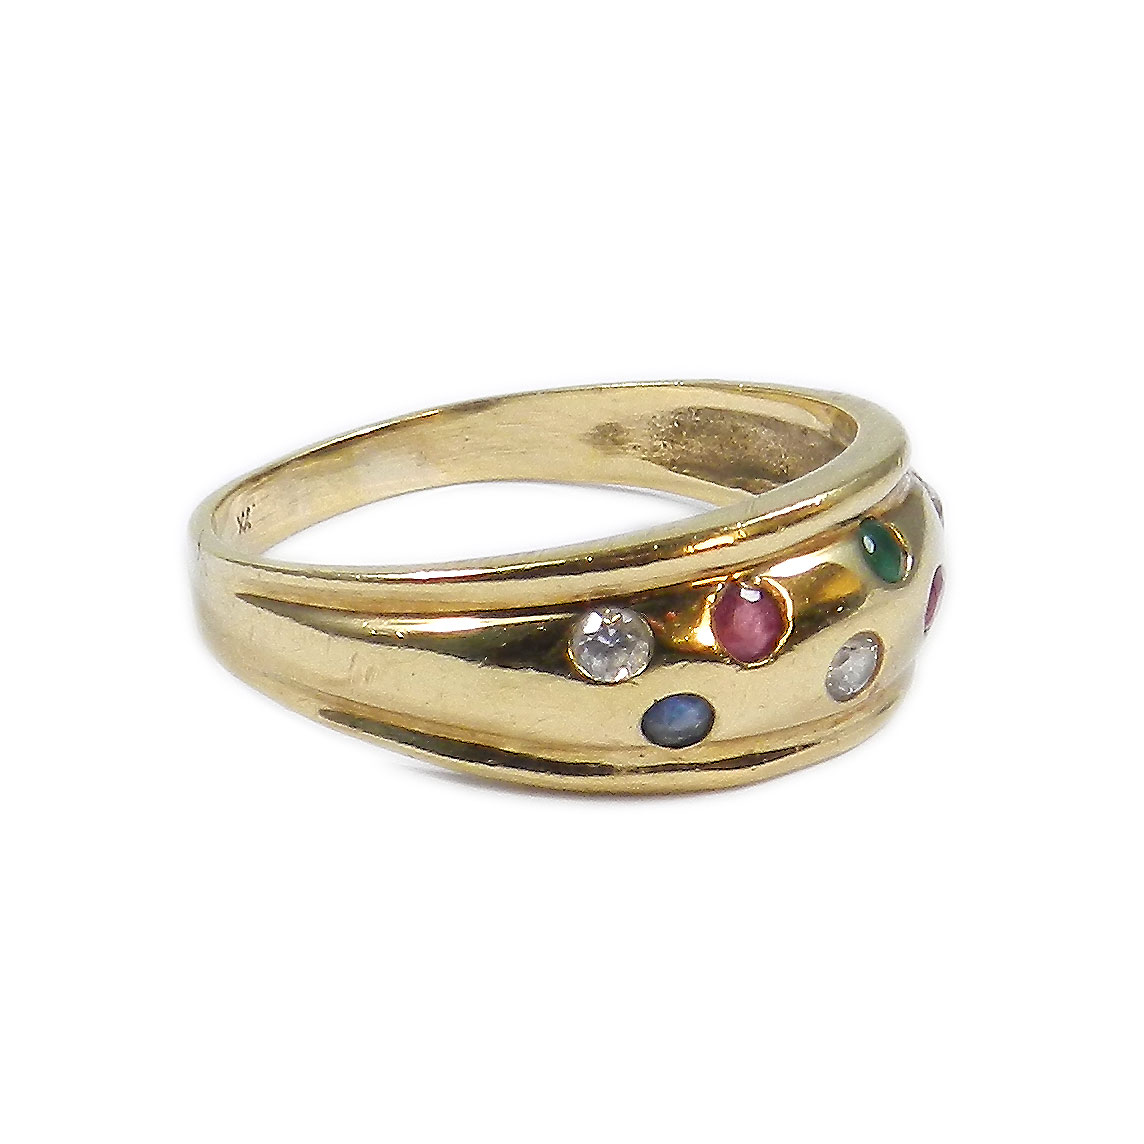 edelstein 333 gold ring mit saphir rubin smaragd zirkonia multicolor ebay. Black Bedroom Furniture Sets. Home Design Ideas